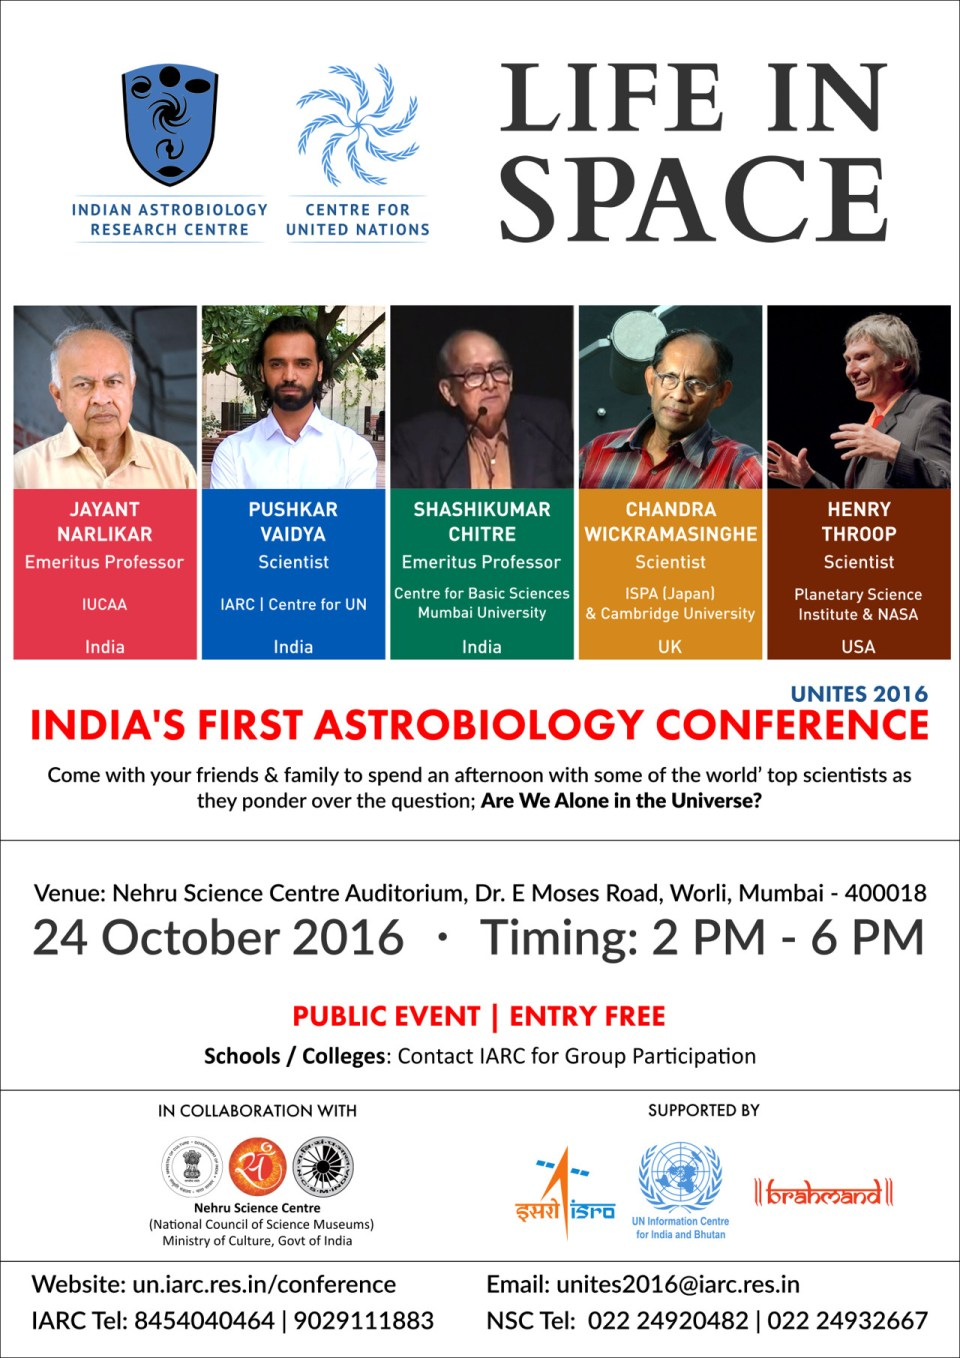 Life in Space - India's First Astrobiology Conference Poster